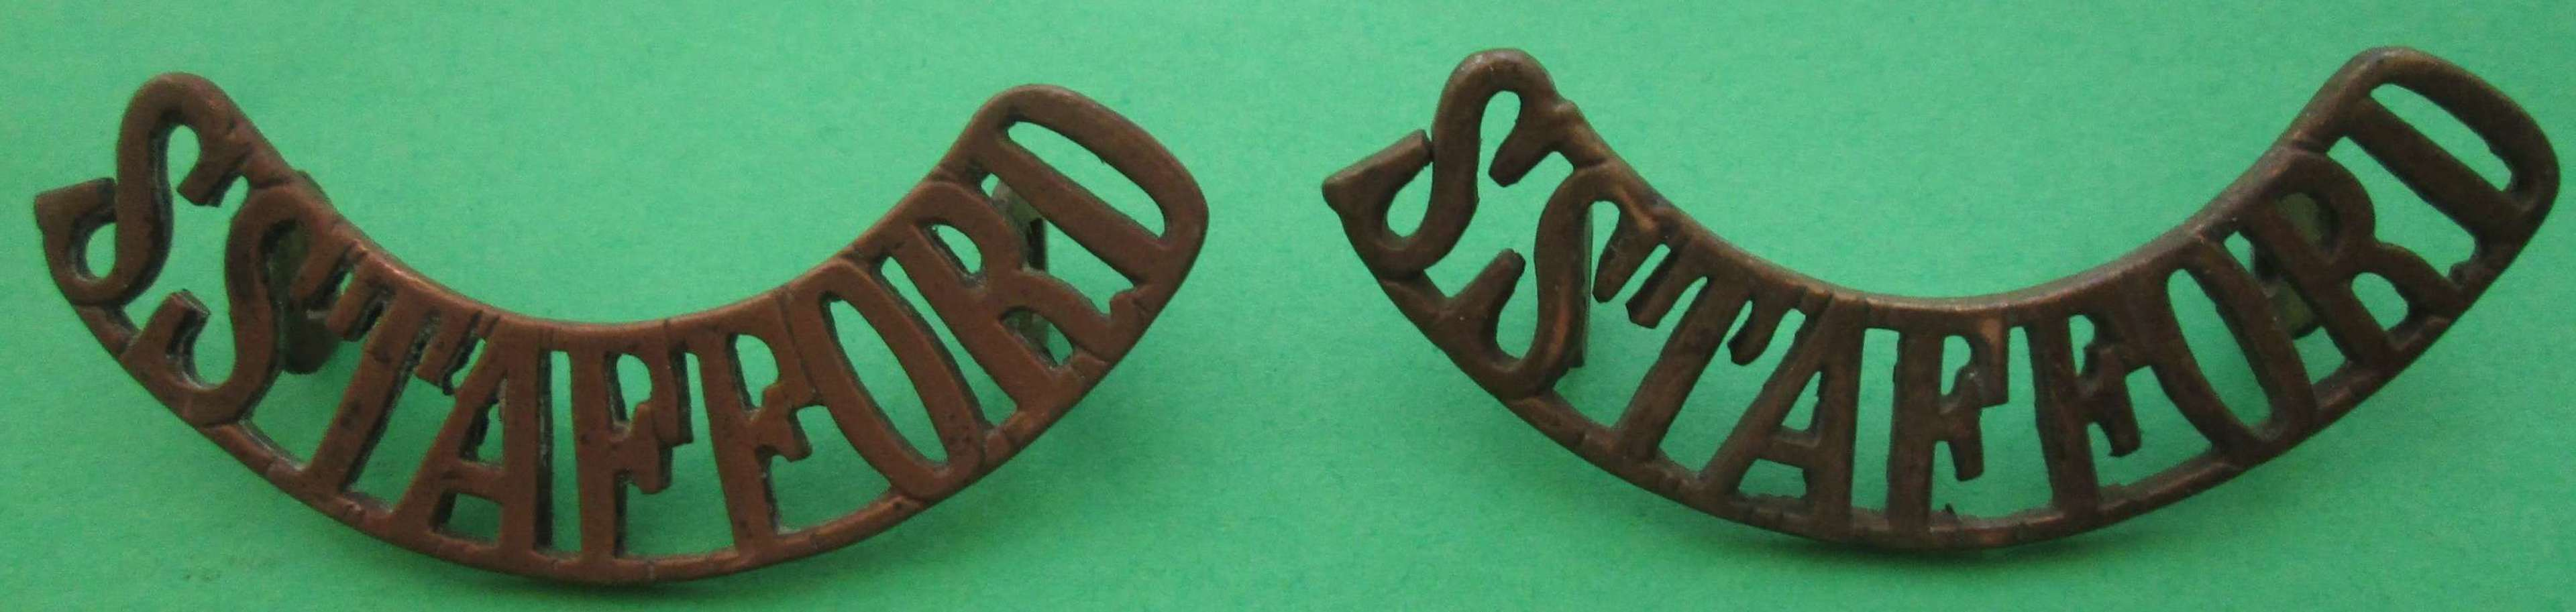 A PAIR OF STAFFORDSHIRE METAL SHOULDER TITLES